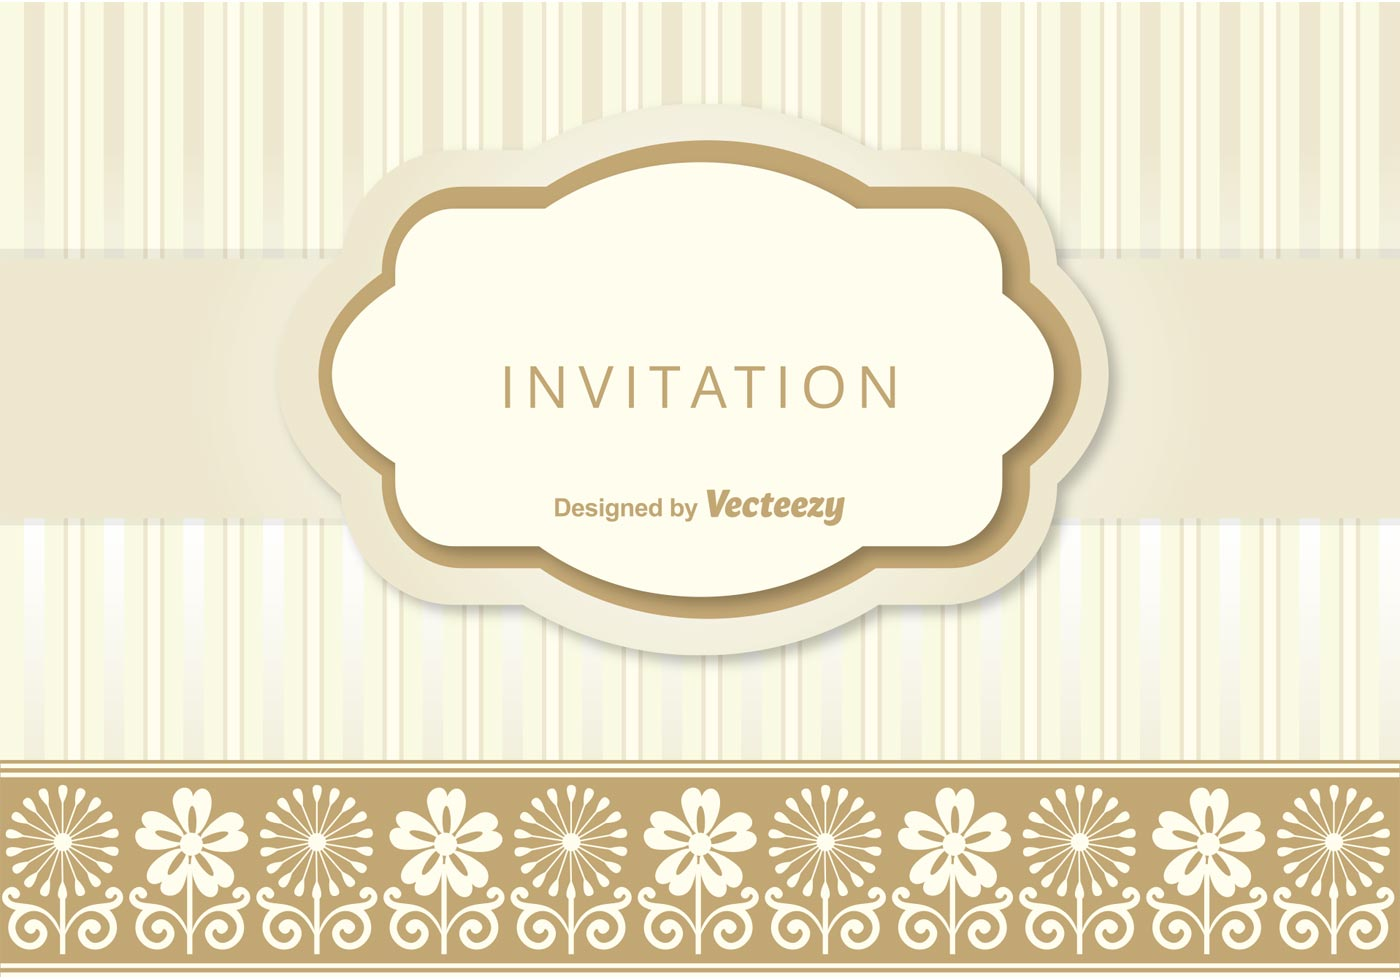 Invitation free vector art 4458 free downloads cute invitation template stopboris Gallery